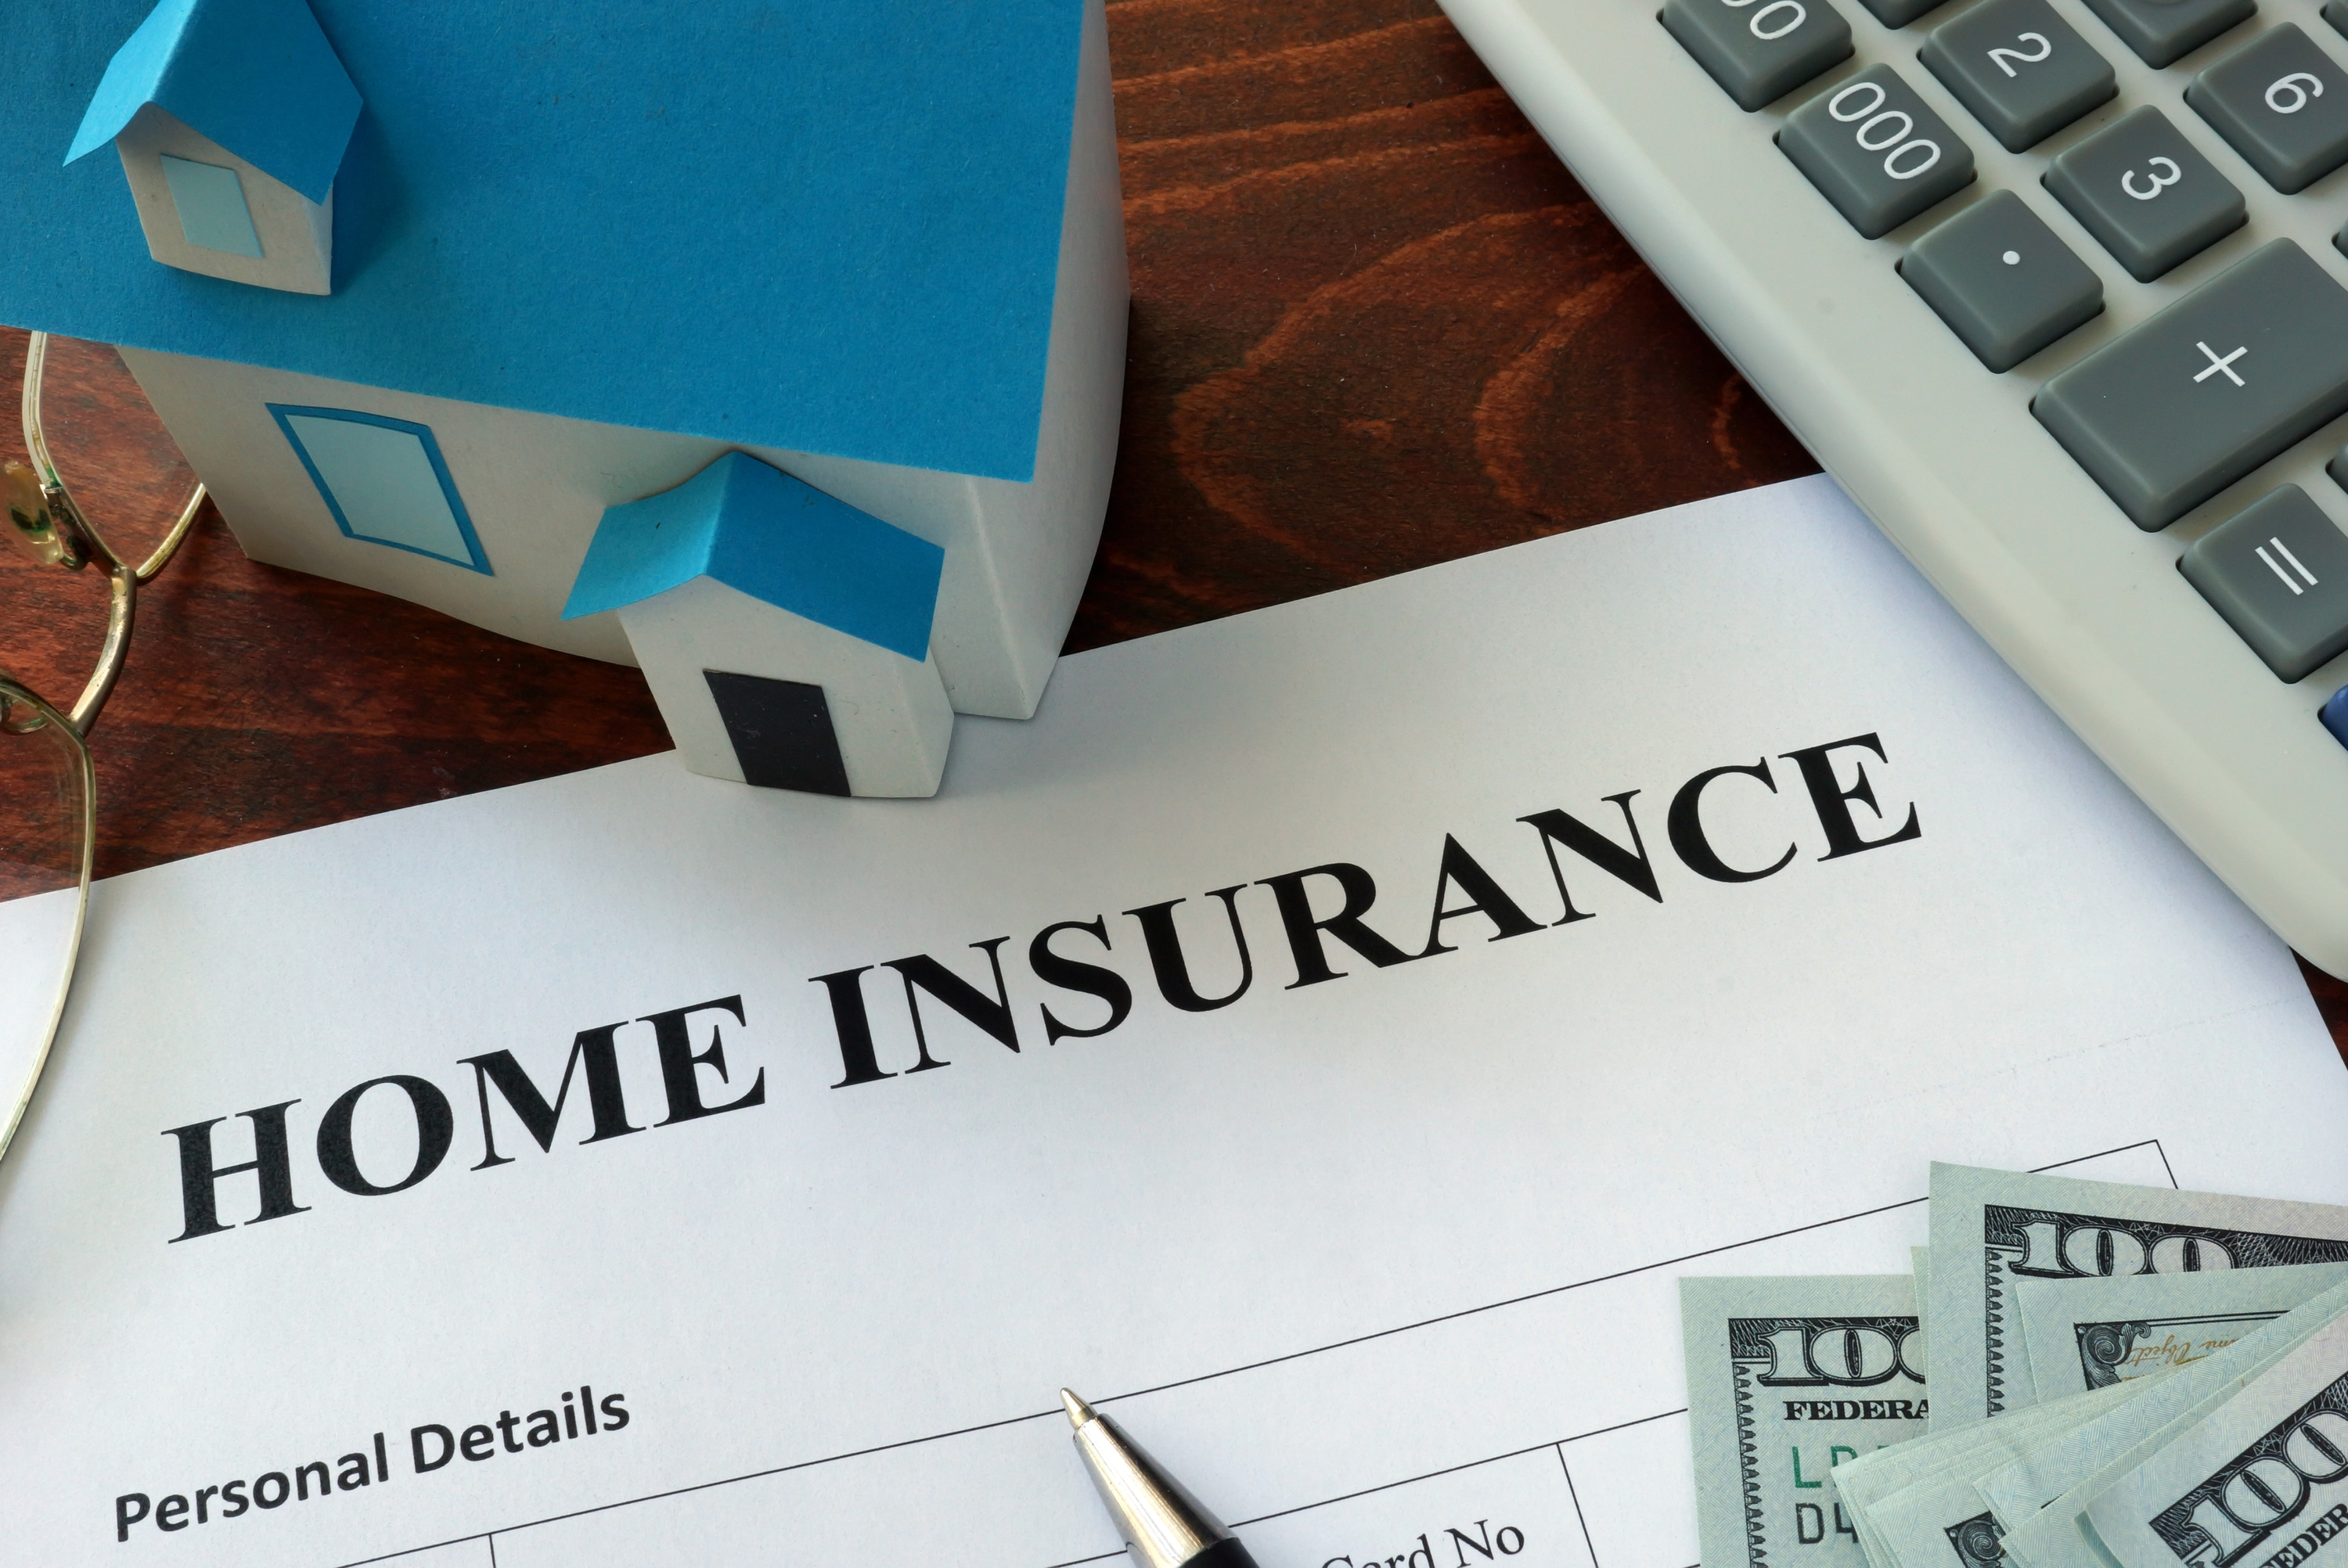 Homeowners Insurance: What It Is and What Does It Cover